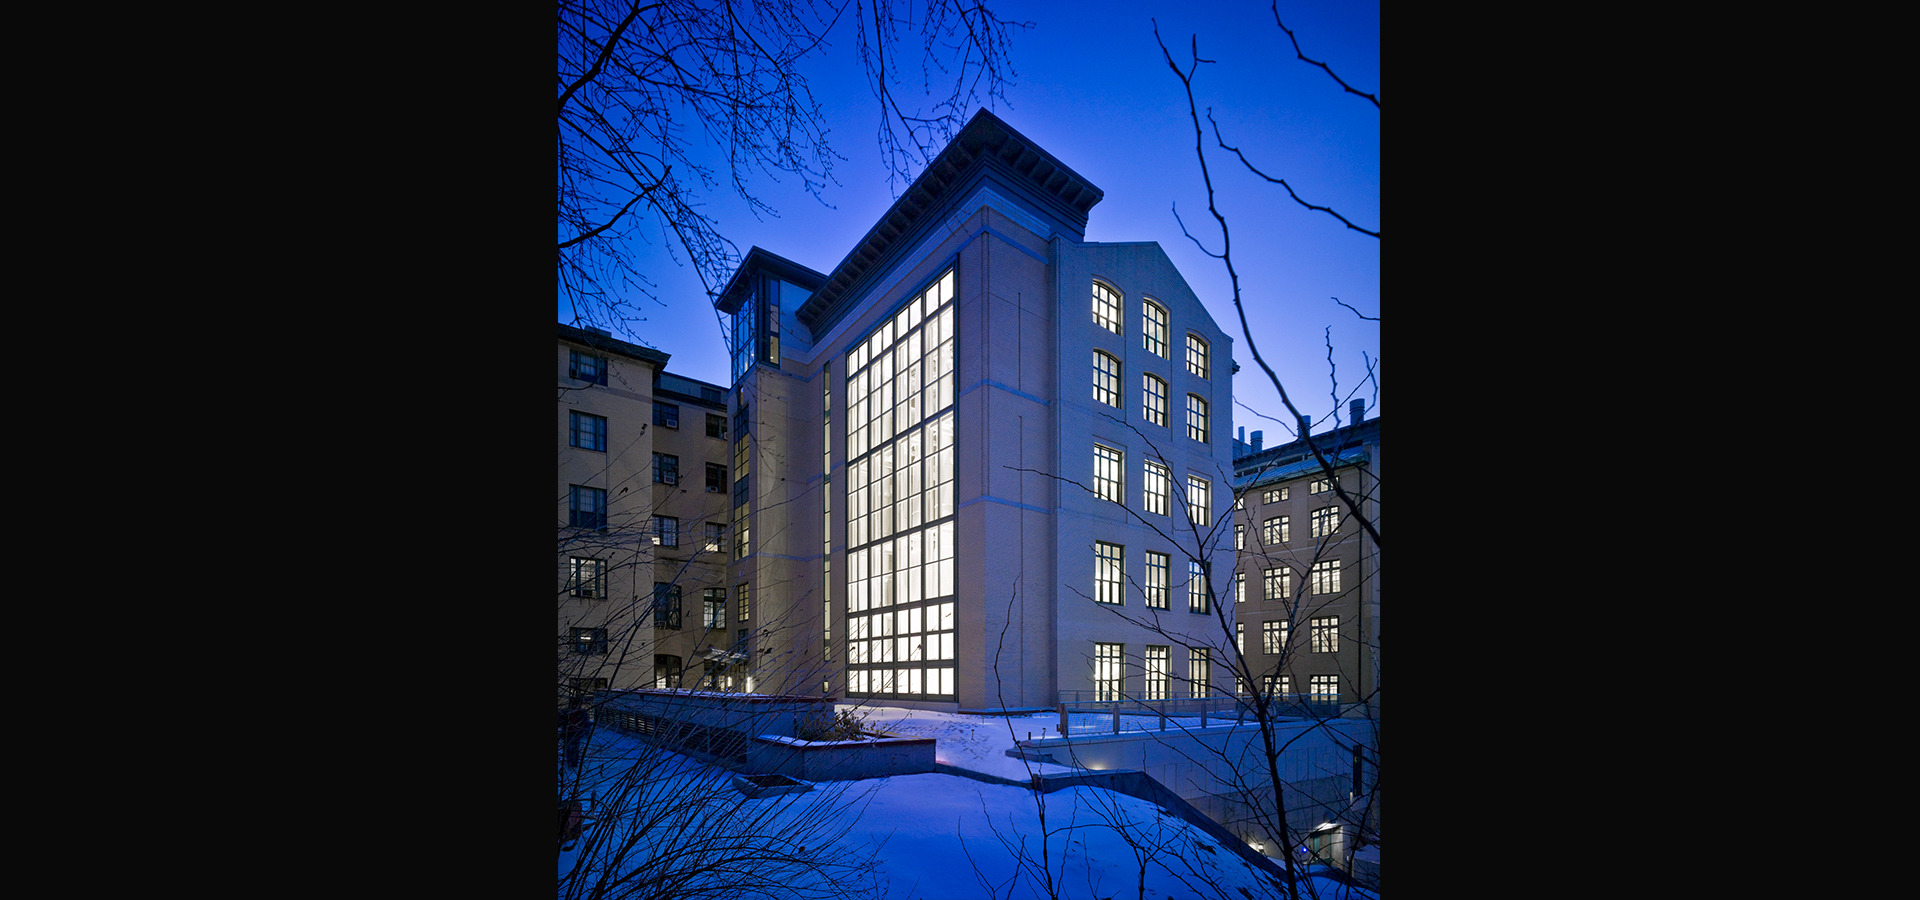 CARNEGIE MELLON UNI. DOHERTY HALL PH-I +II*